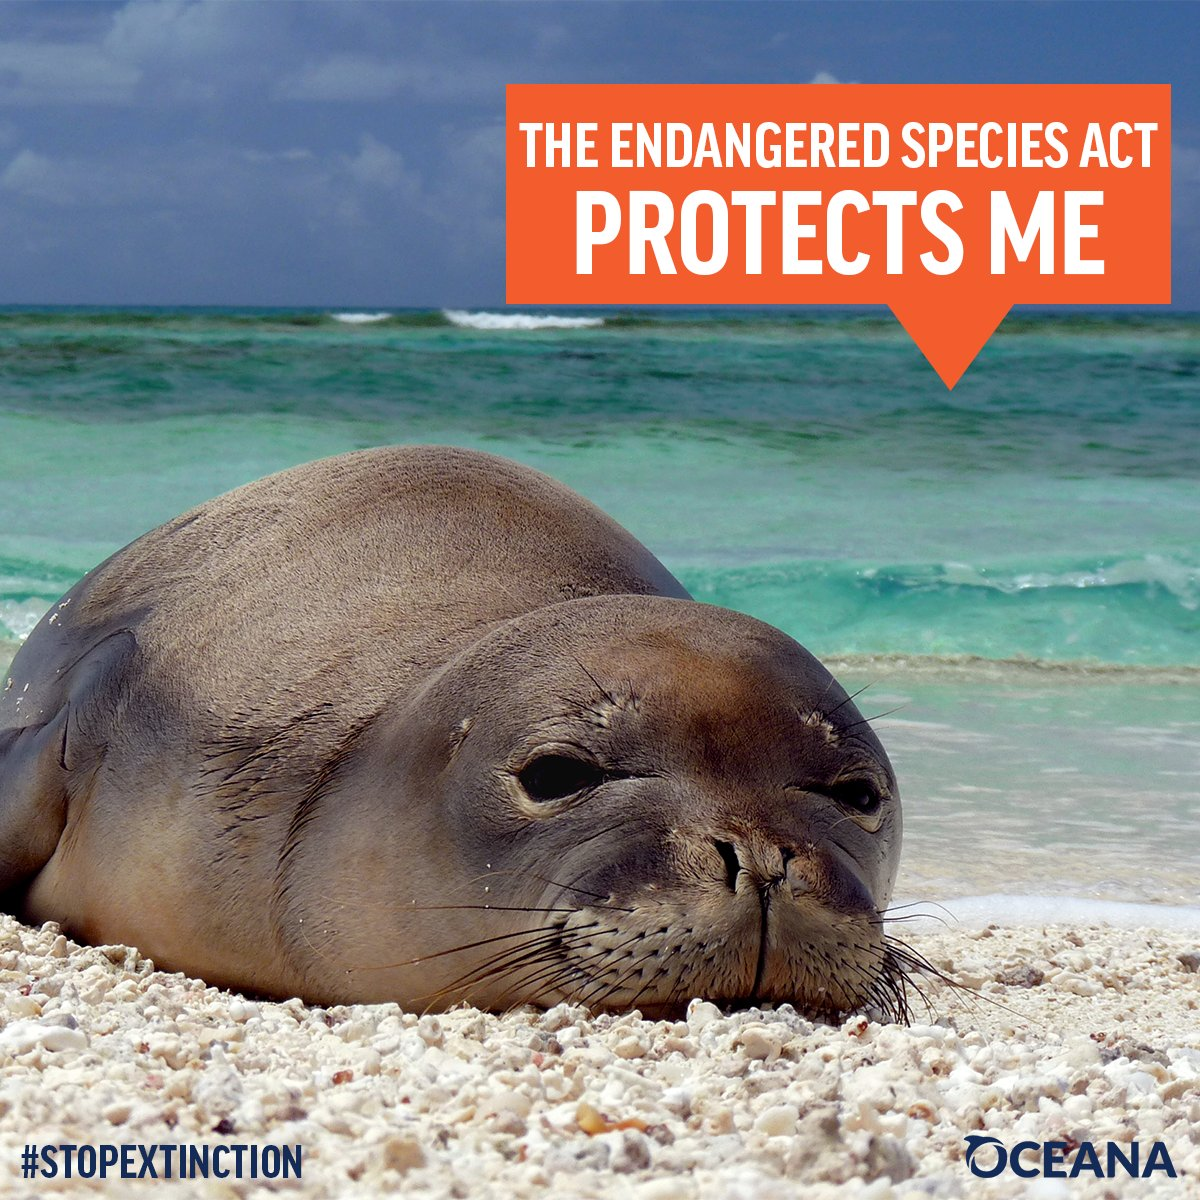 RT: Don't let rare species like the Hawaiian monk seal slip towards extinction. Tell Congress if we want to #StopExtinction we need the #ESA<br>http://pic.twitter.com/TxitkOu5uU